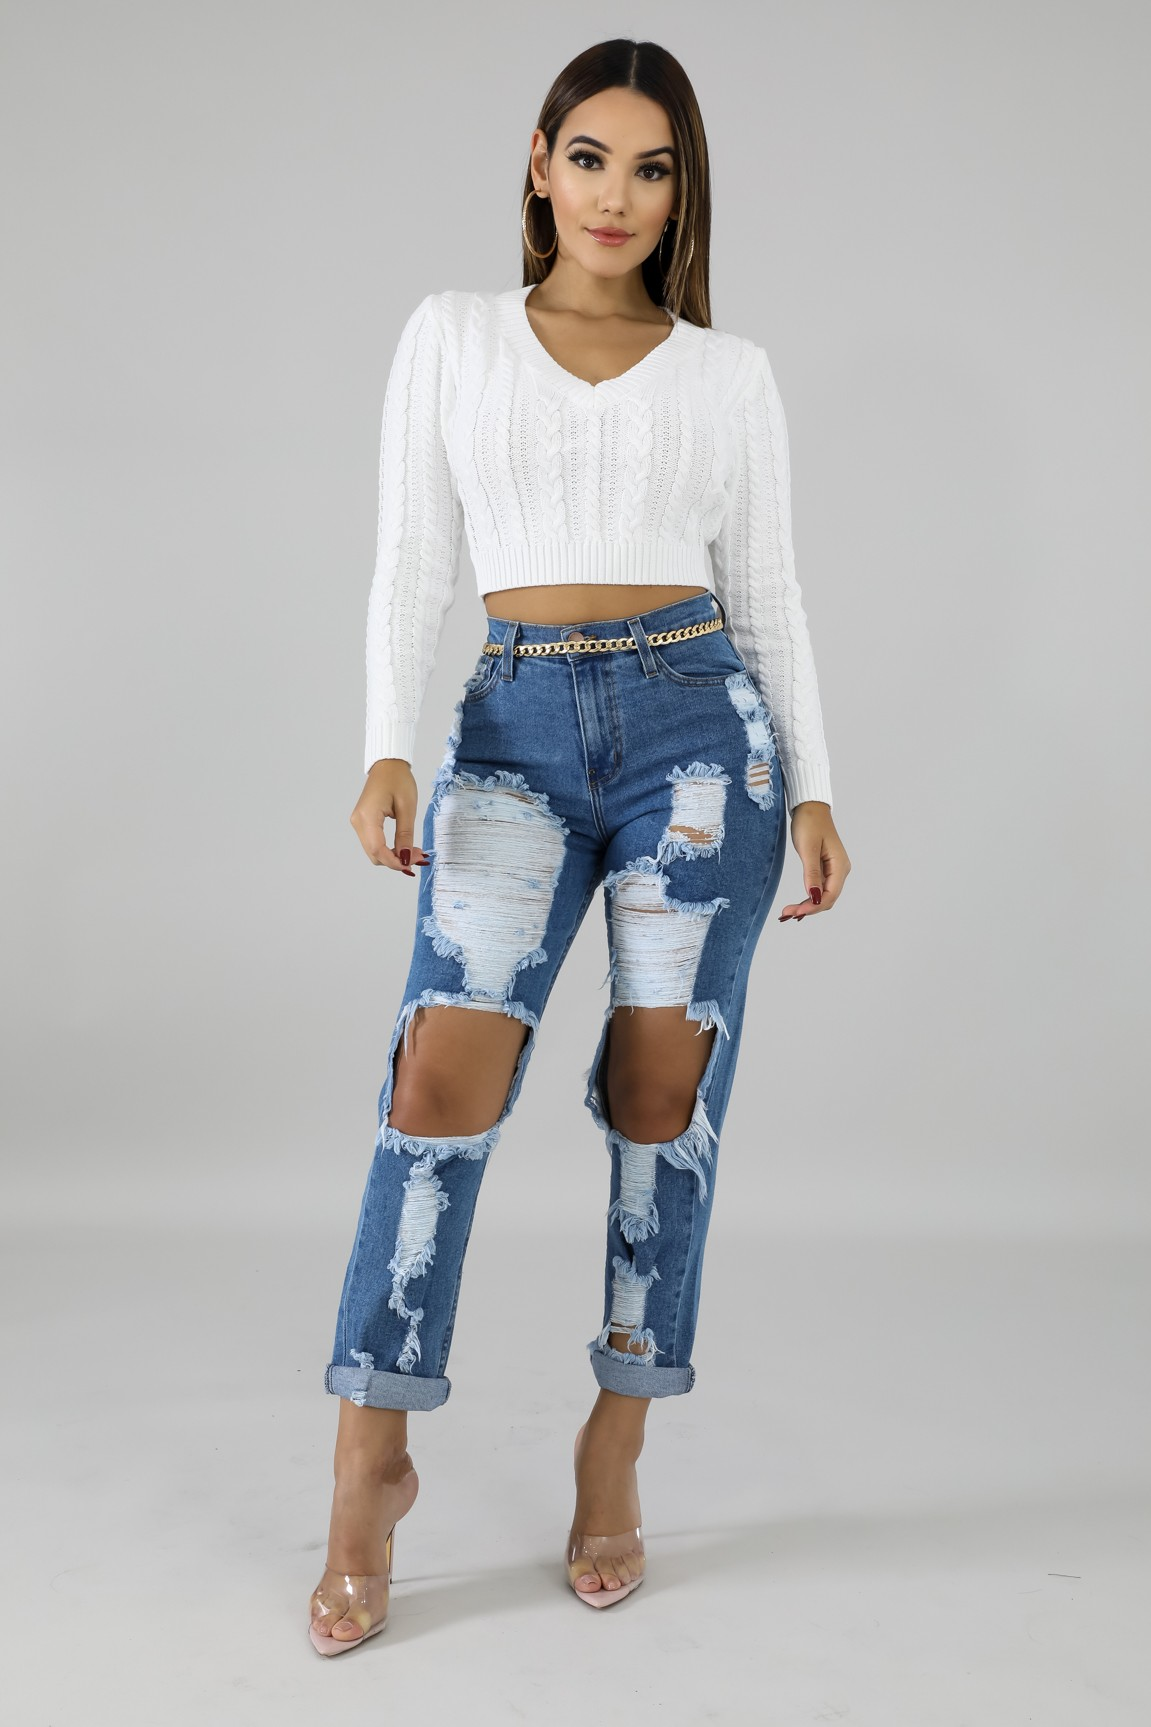 Outrages Jeans